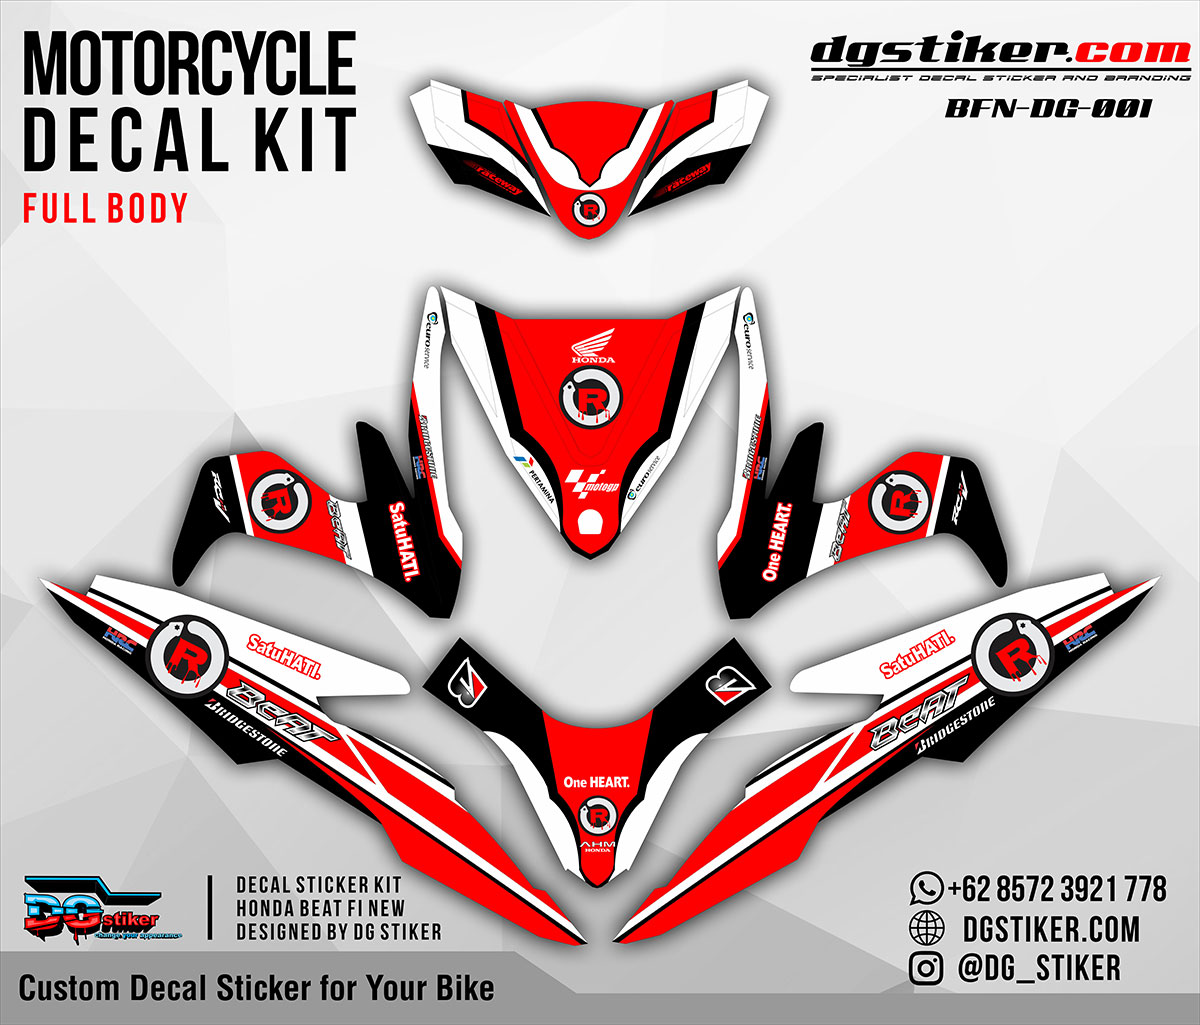 Decal Striping Beat FI New Lorenzo DG Stiker